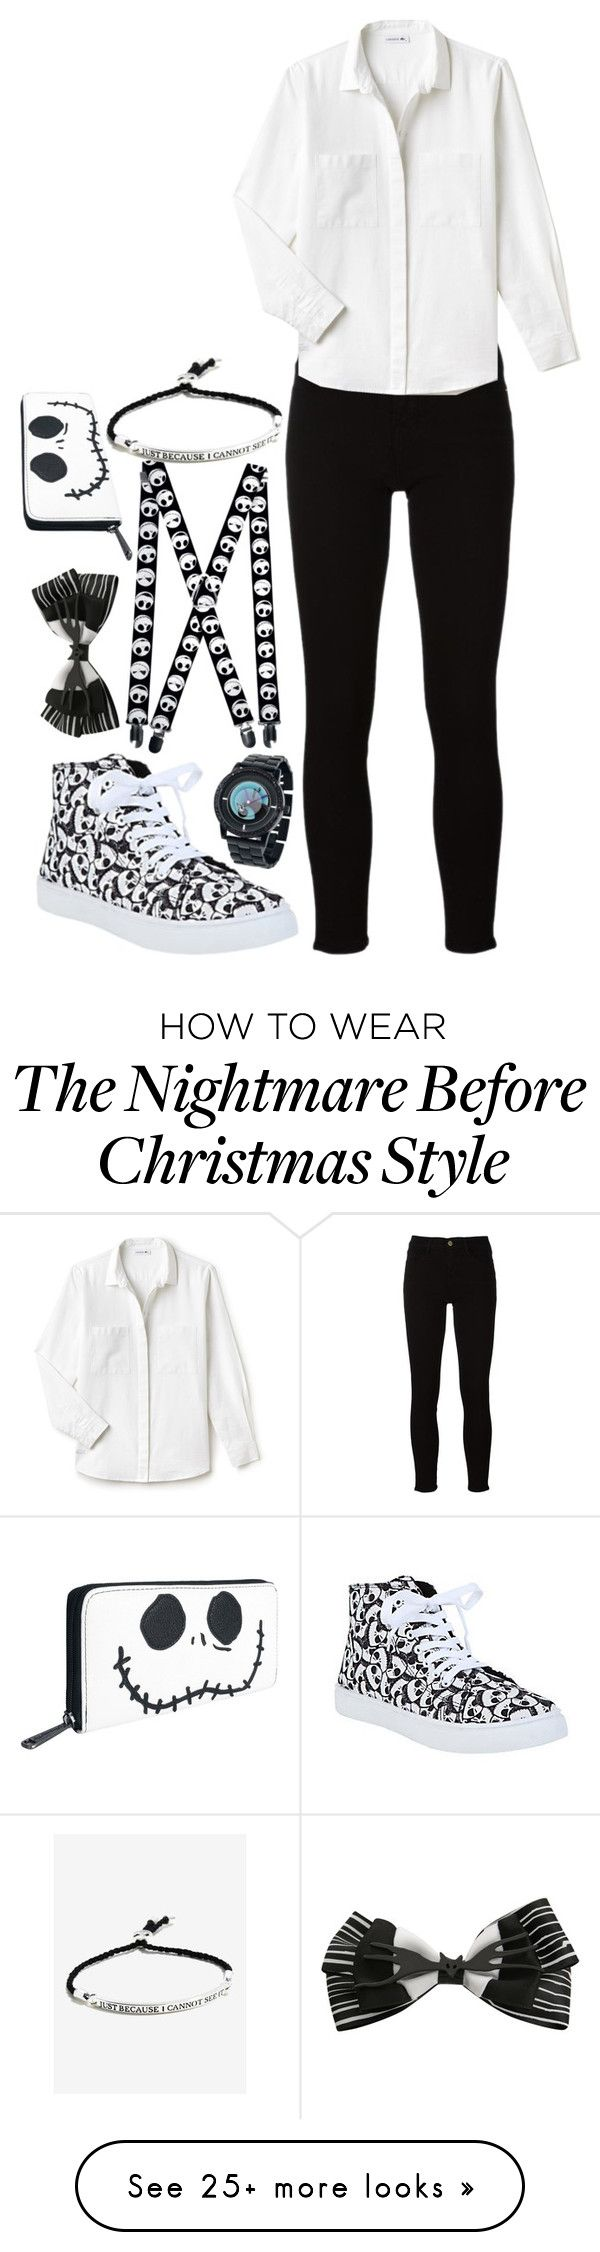 """""""The Nightmare Before Christmas #2"""" by twisted-magic on Polyvore featuring Frame, Disney and Lacoste"""